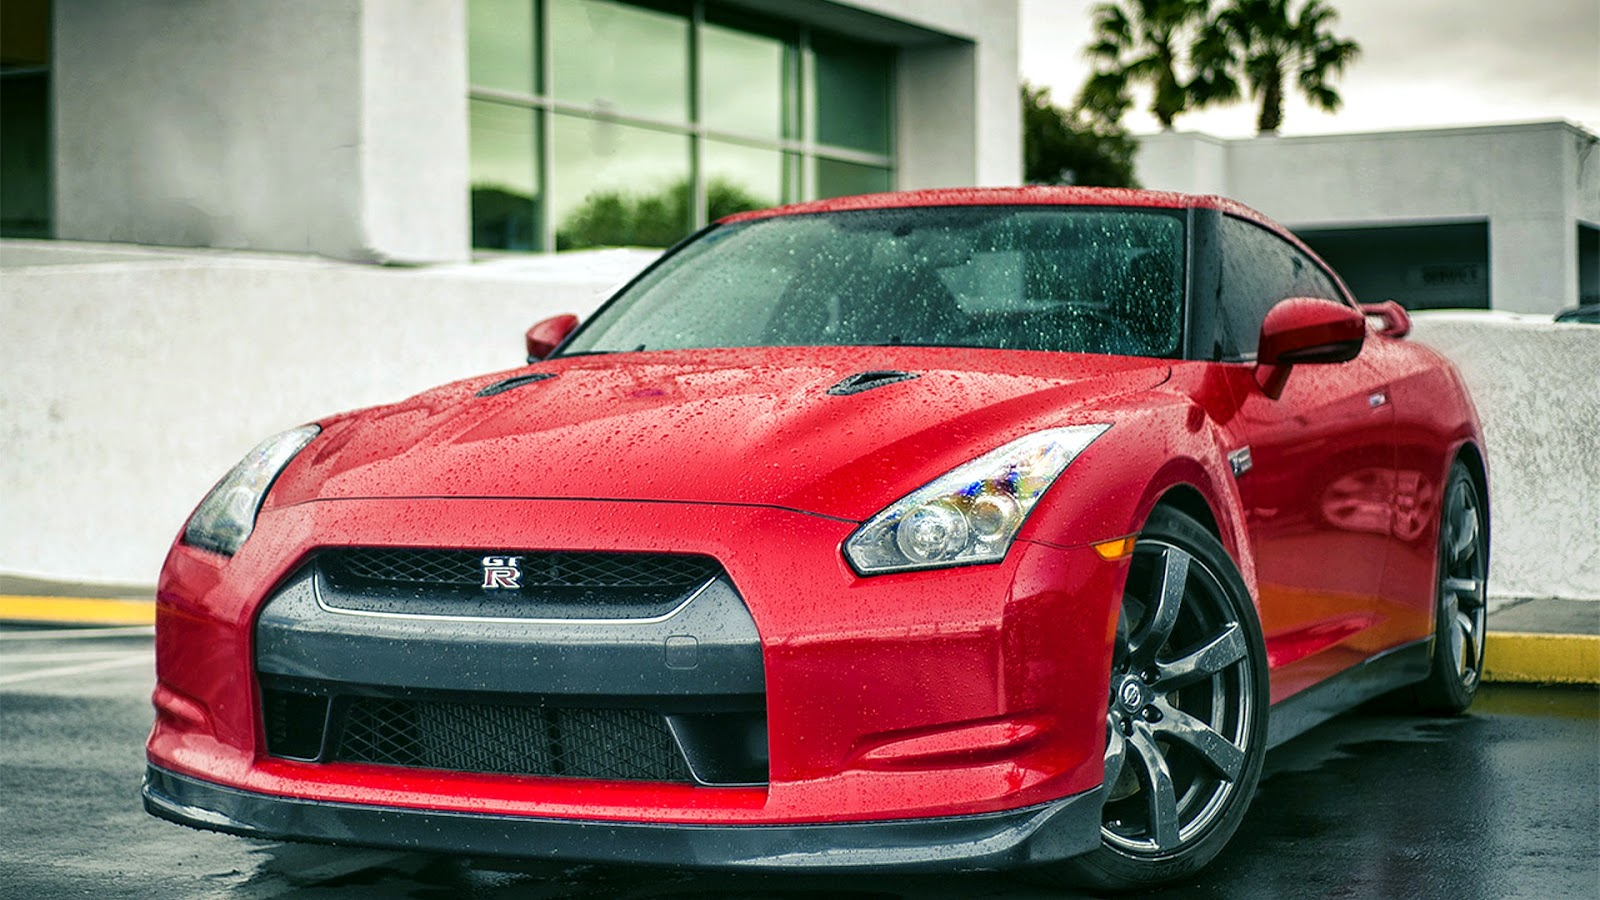 Nissan Gtr Wallpaper Hd Hd Wallpaper With Cars